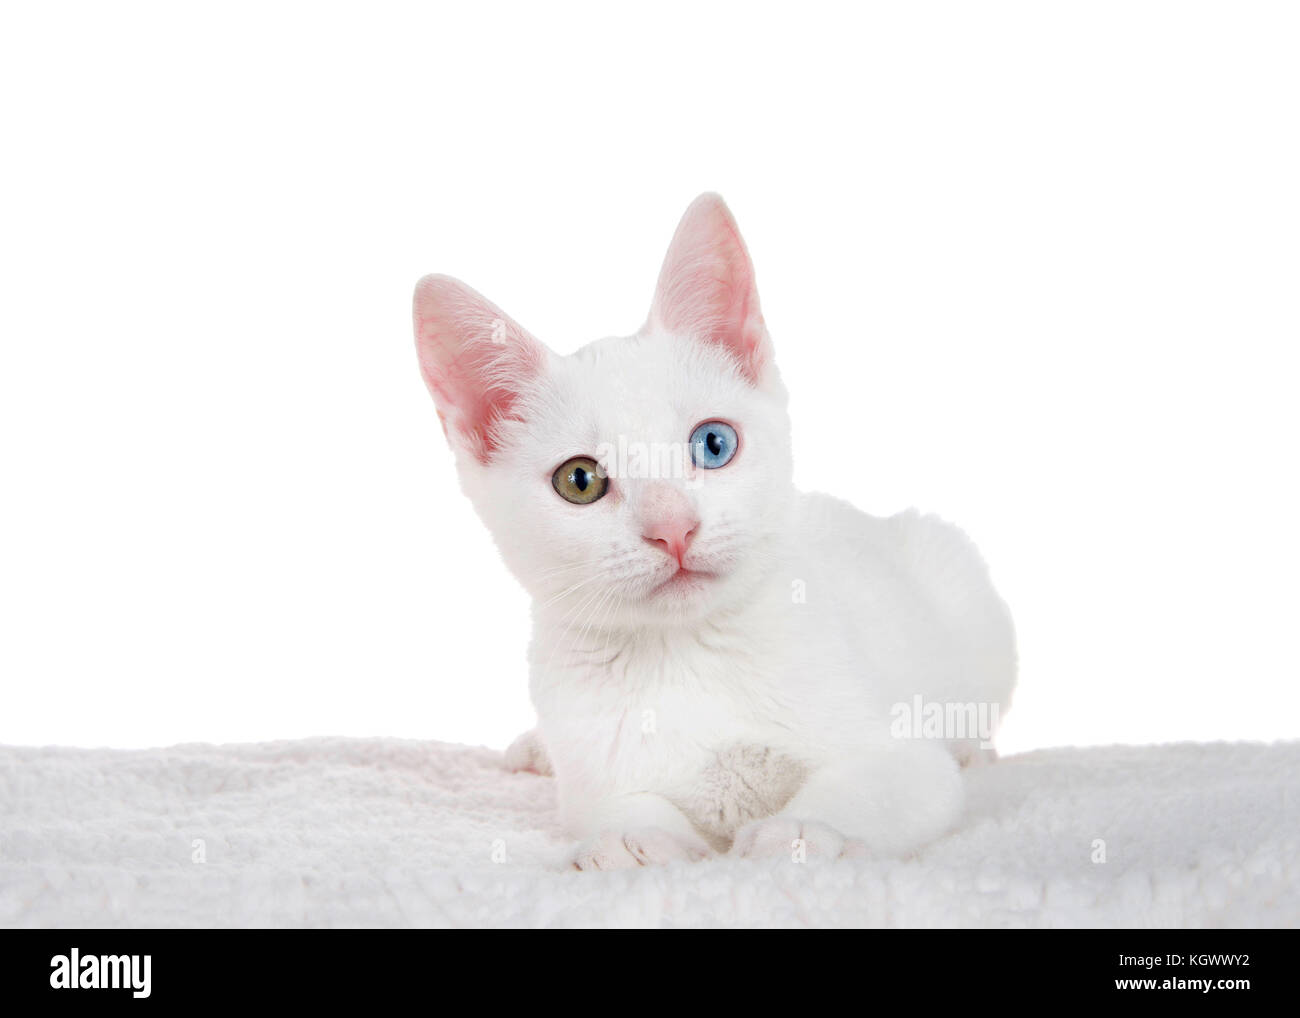 ee924d870682c1 Portrait of a white kitten with heterochromia or  odd-eyed  laying on a